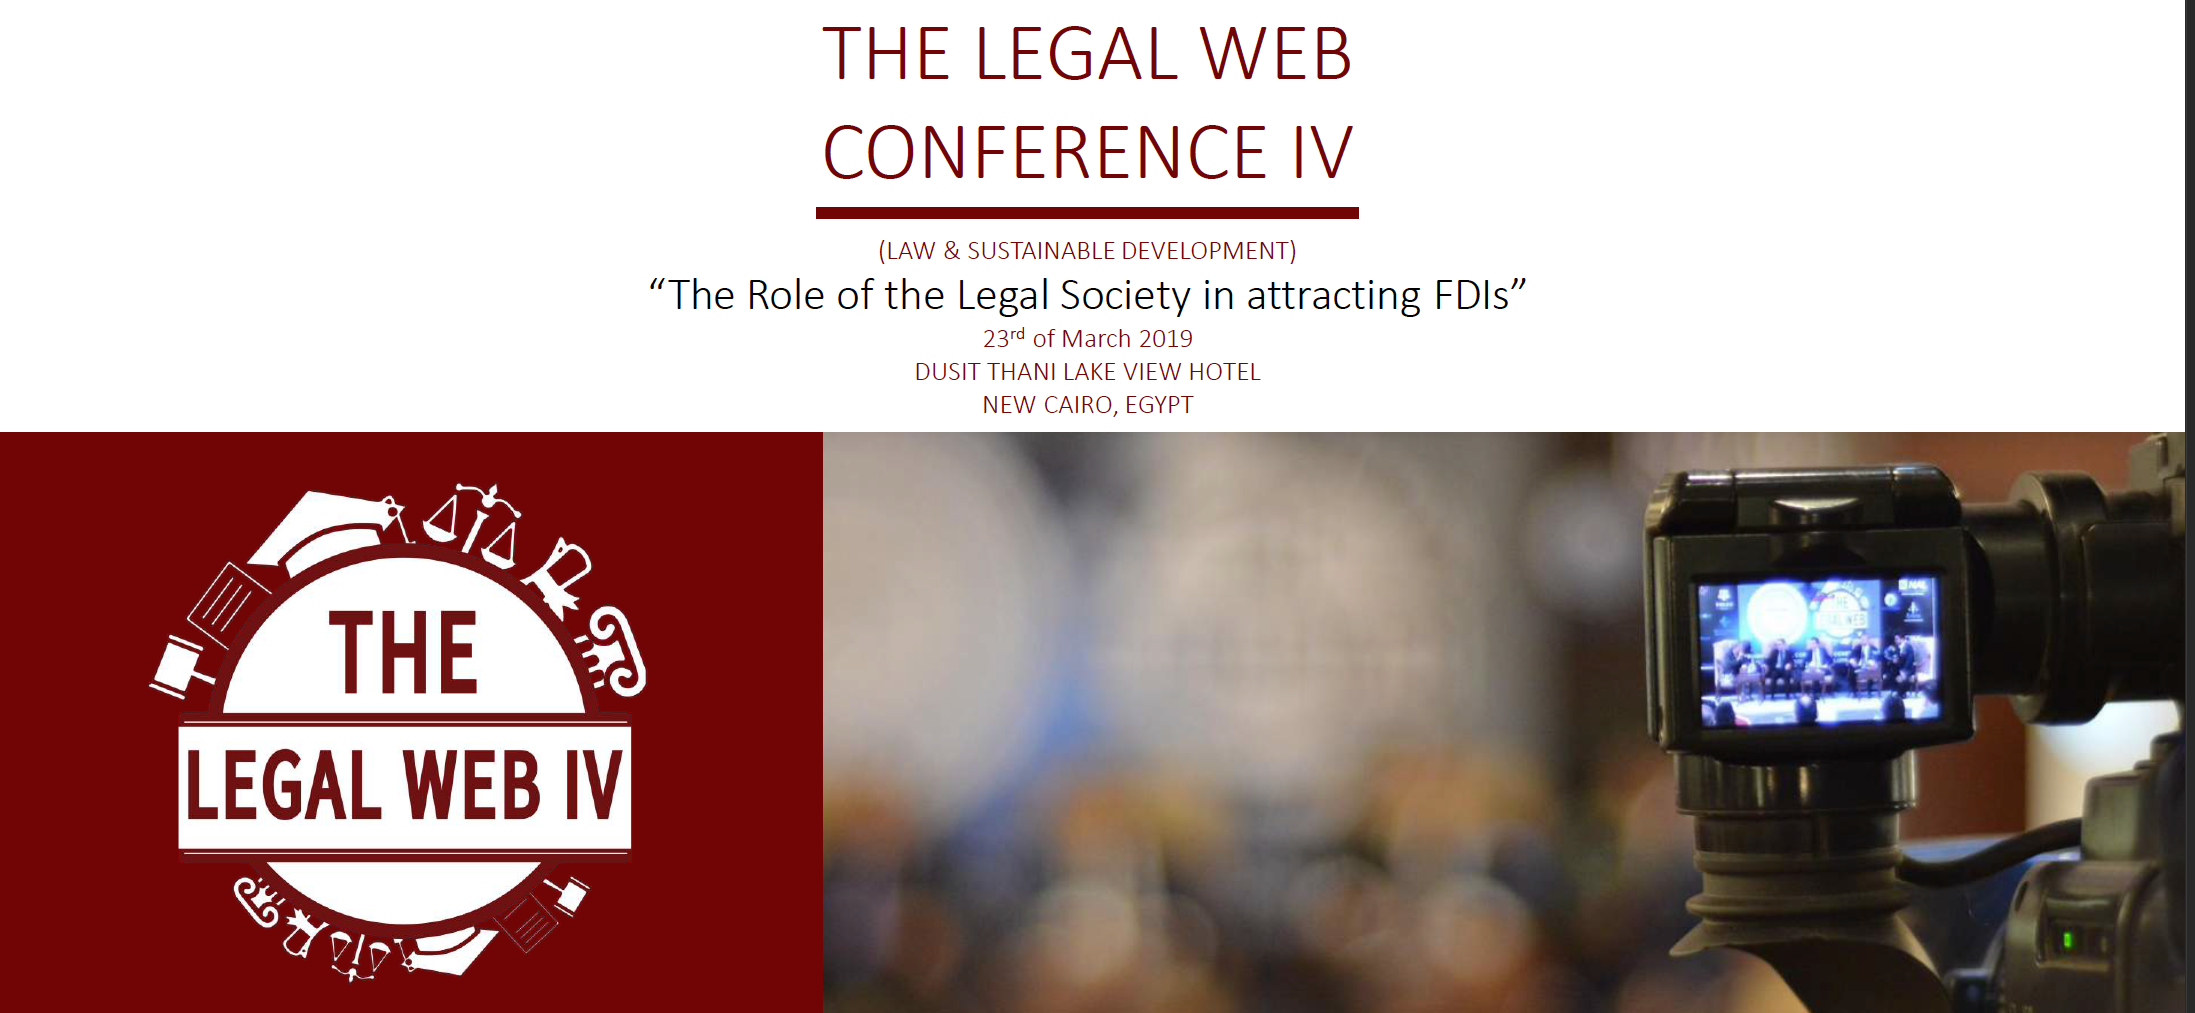 Fourth Annual Legal Web Conference